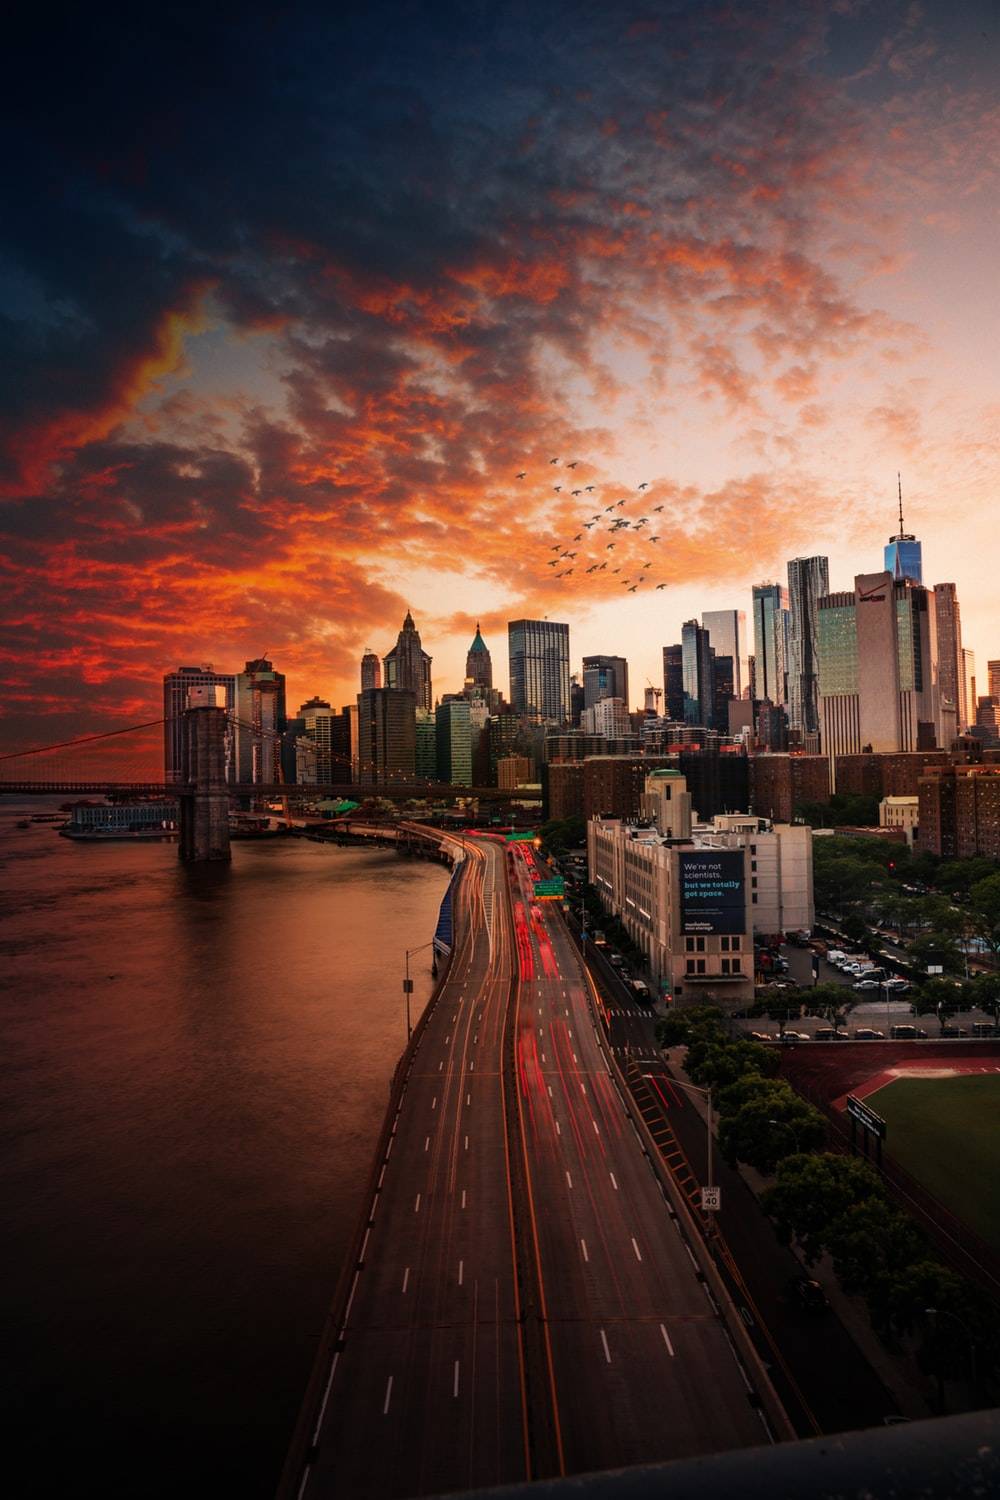 Free Download 500 New York City Pictures Hd Download Images On Unsplash 1000x1500 For Your Desktop Mobile Tablet Explore 53 Cities Wallpaper Cities Wallpaper European Cities Wallpaper Us Cities Wallpaper